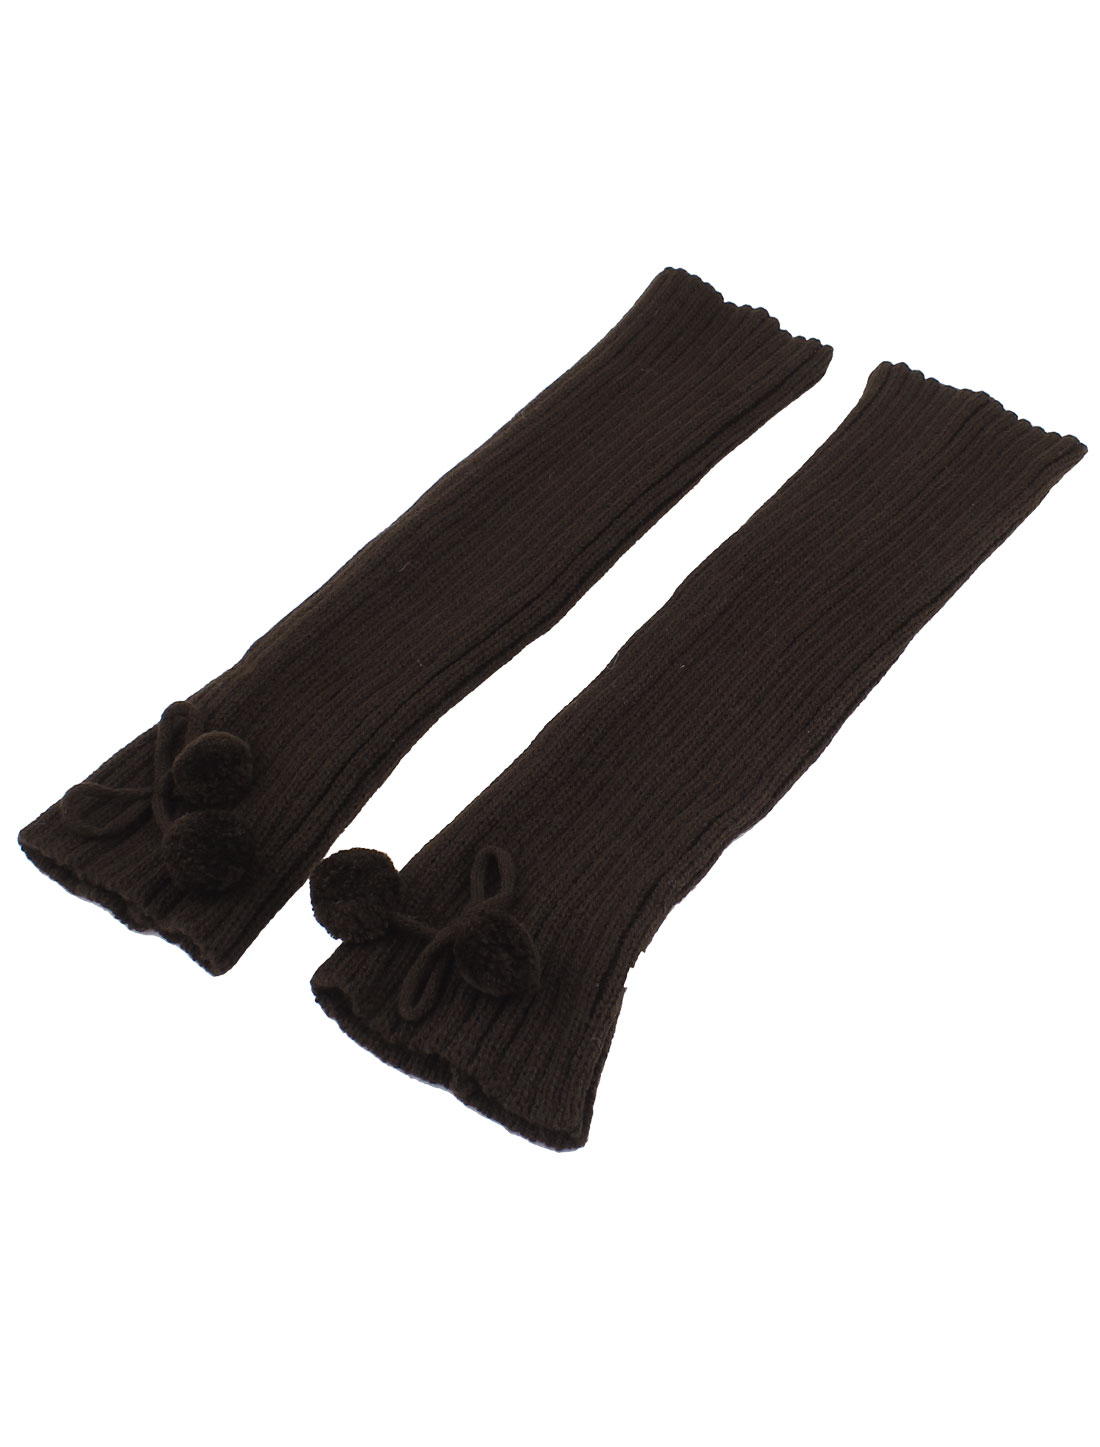 Woman Pom Pom Decor Ribbed Stretchy Leg Warmers Leggings Socks Brown Pair